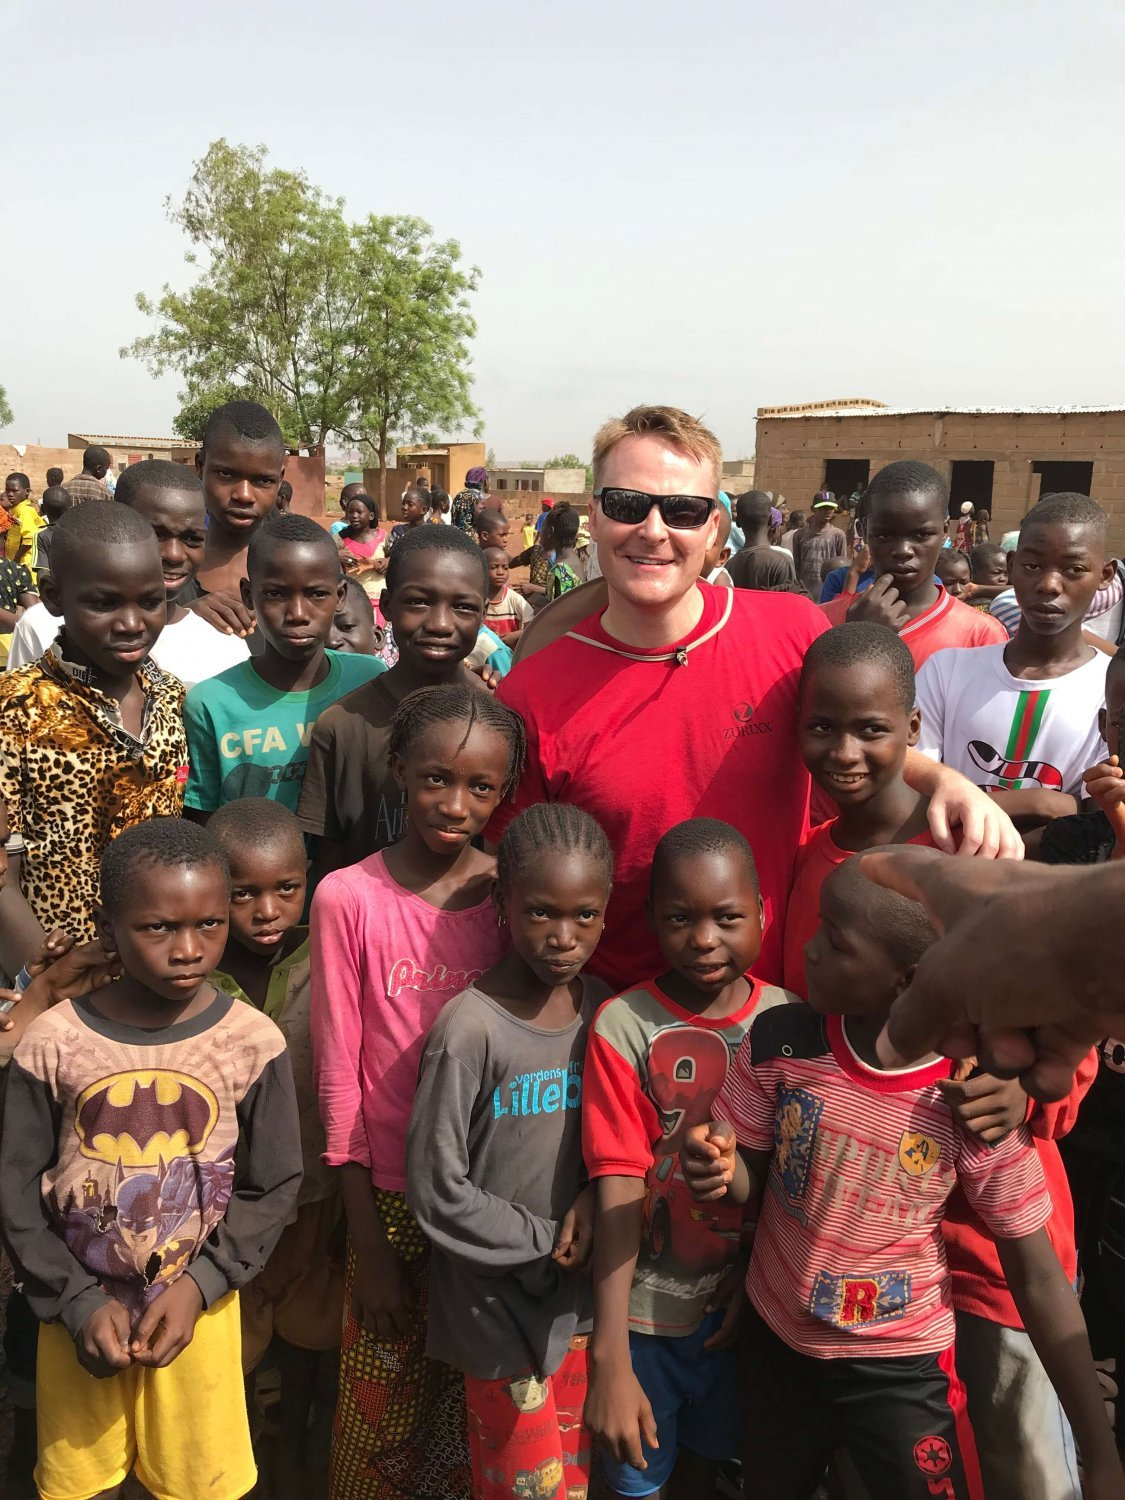 Zurixx recently sponsored a humanitarian trip to Mali, Africa. The local basketball team, Utah Mountain Stars, provided assistance with various service projects while on the service trip.